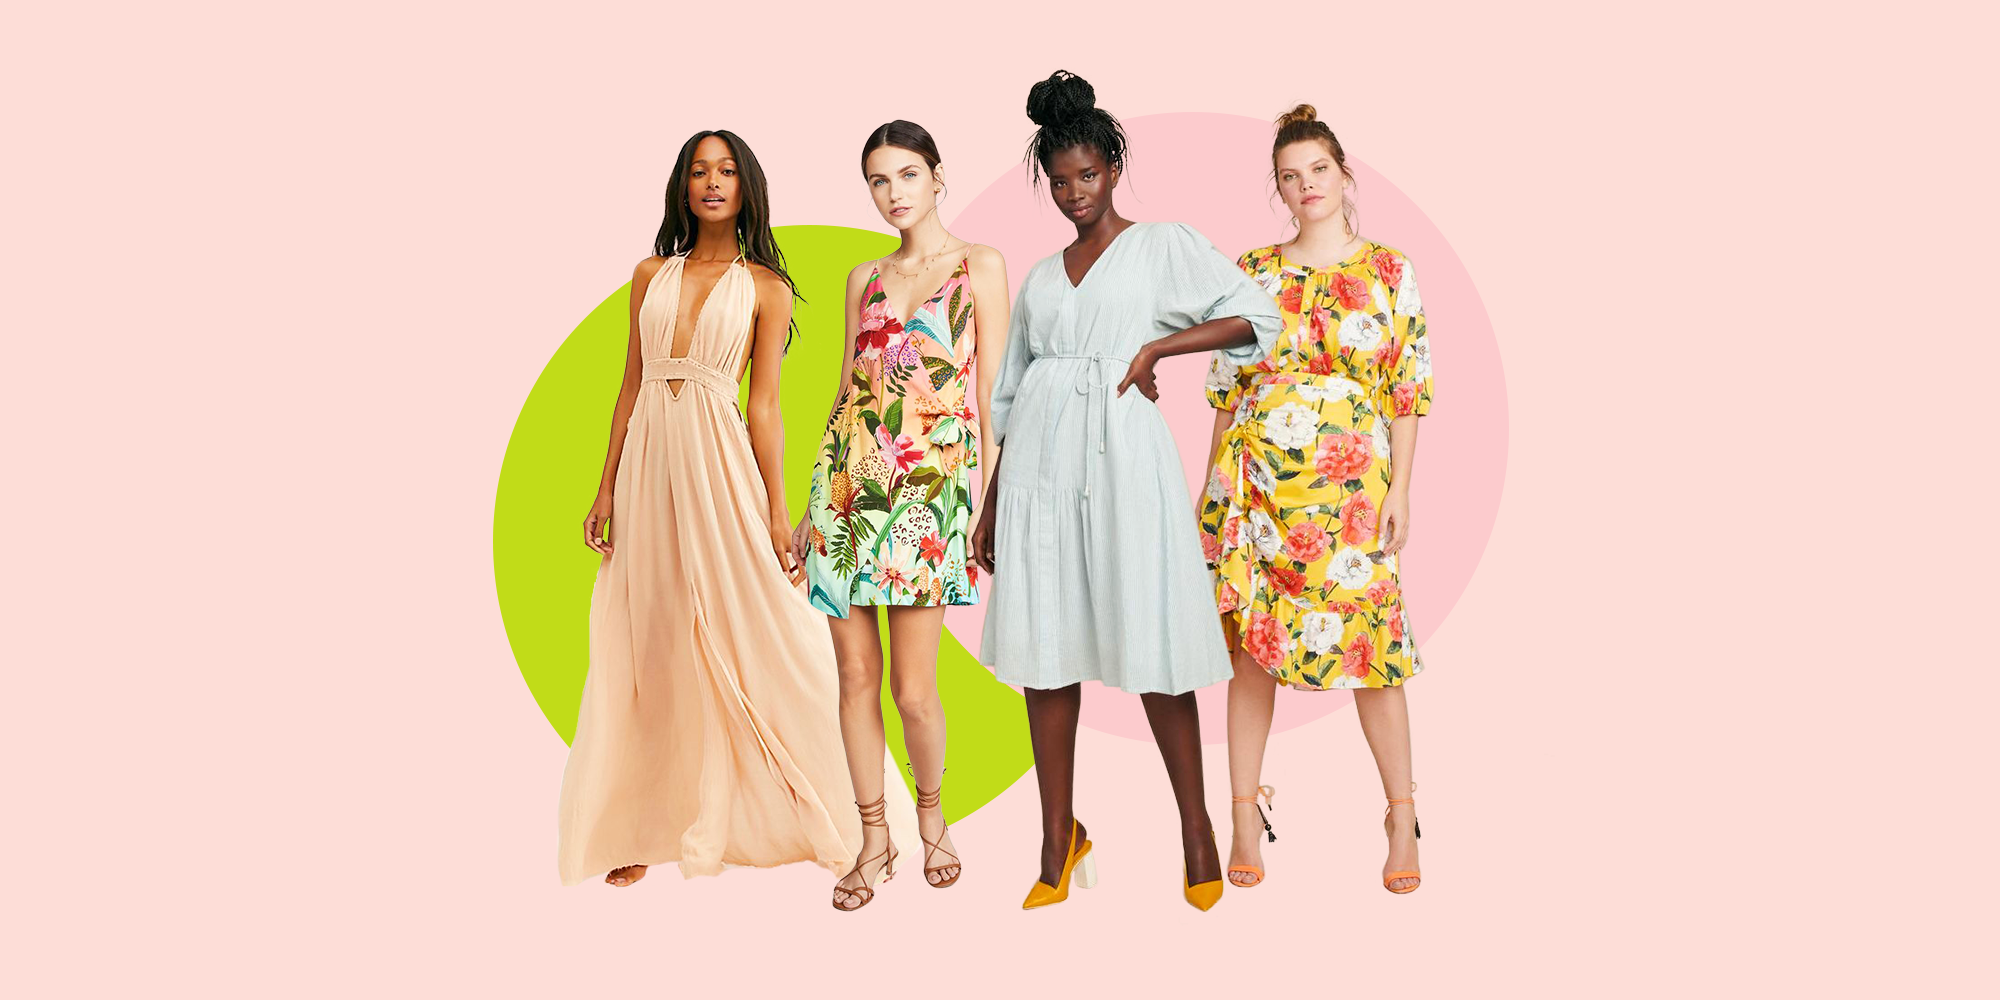 16 Cute Spring Wedding Guest Dresses What To Wear To Spring 2020